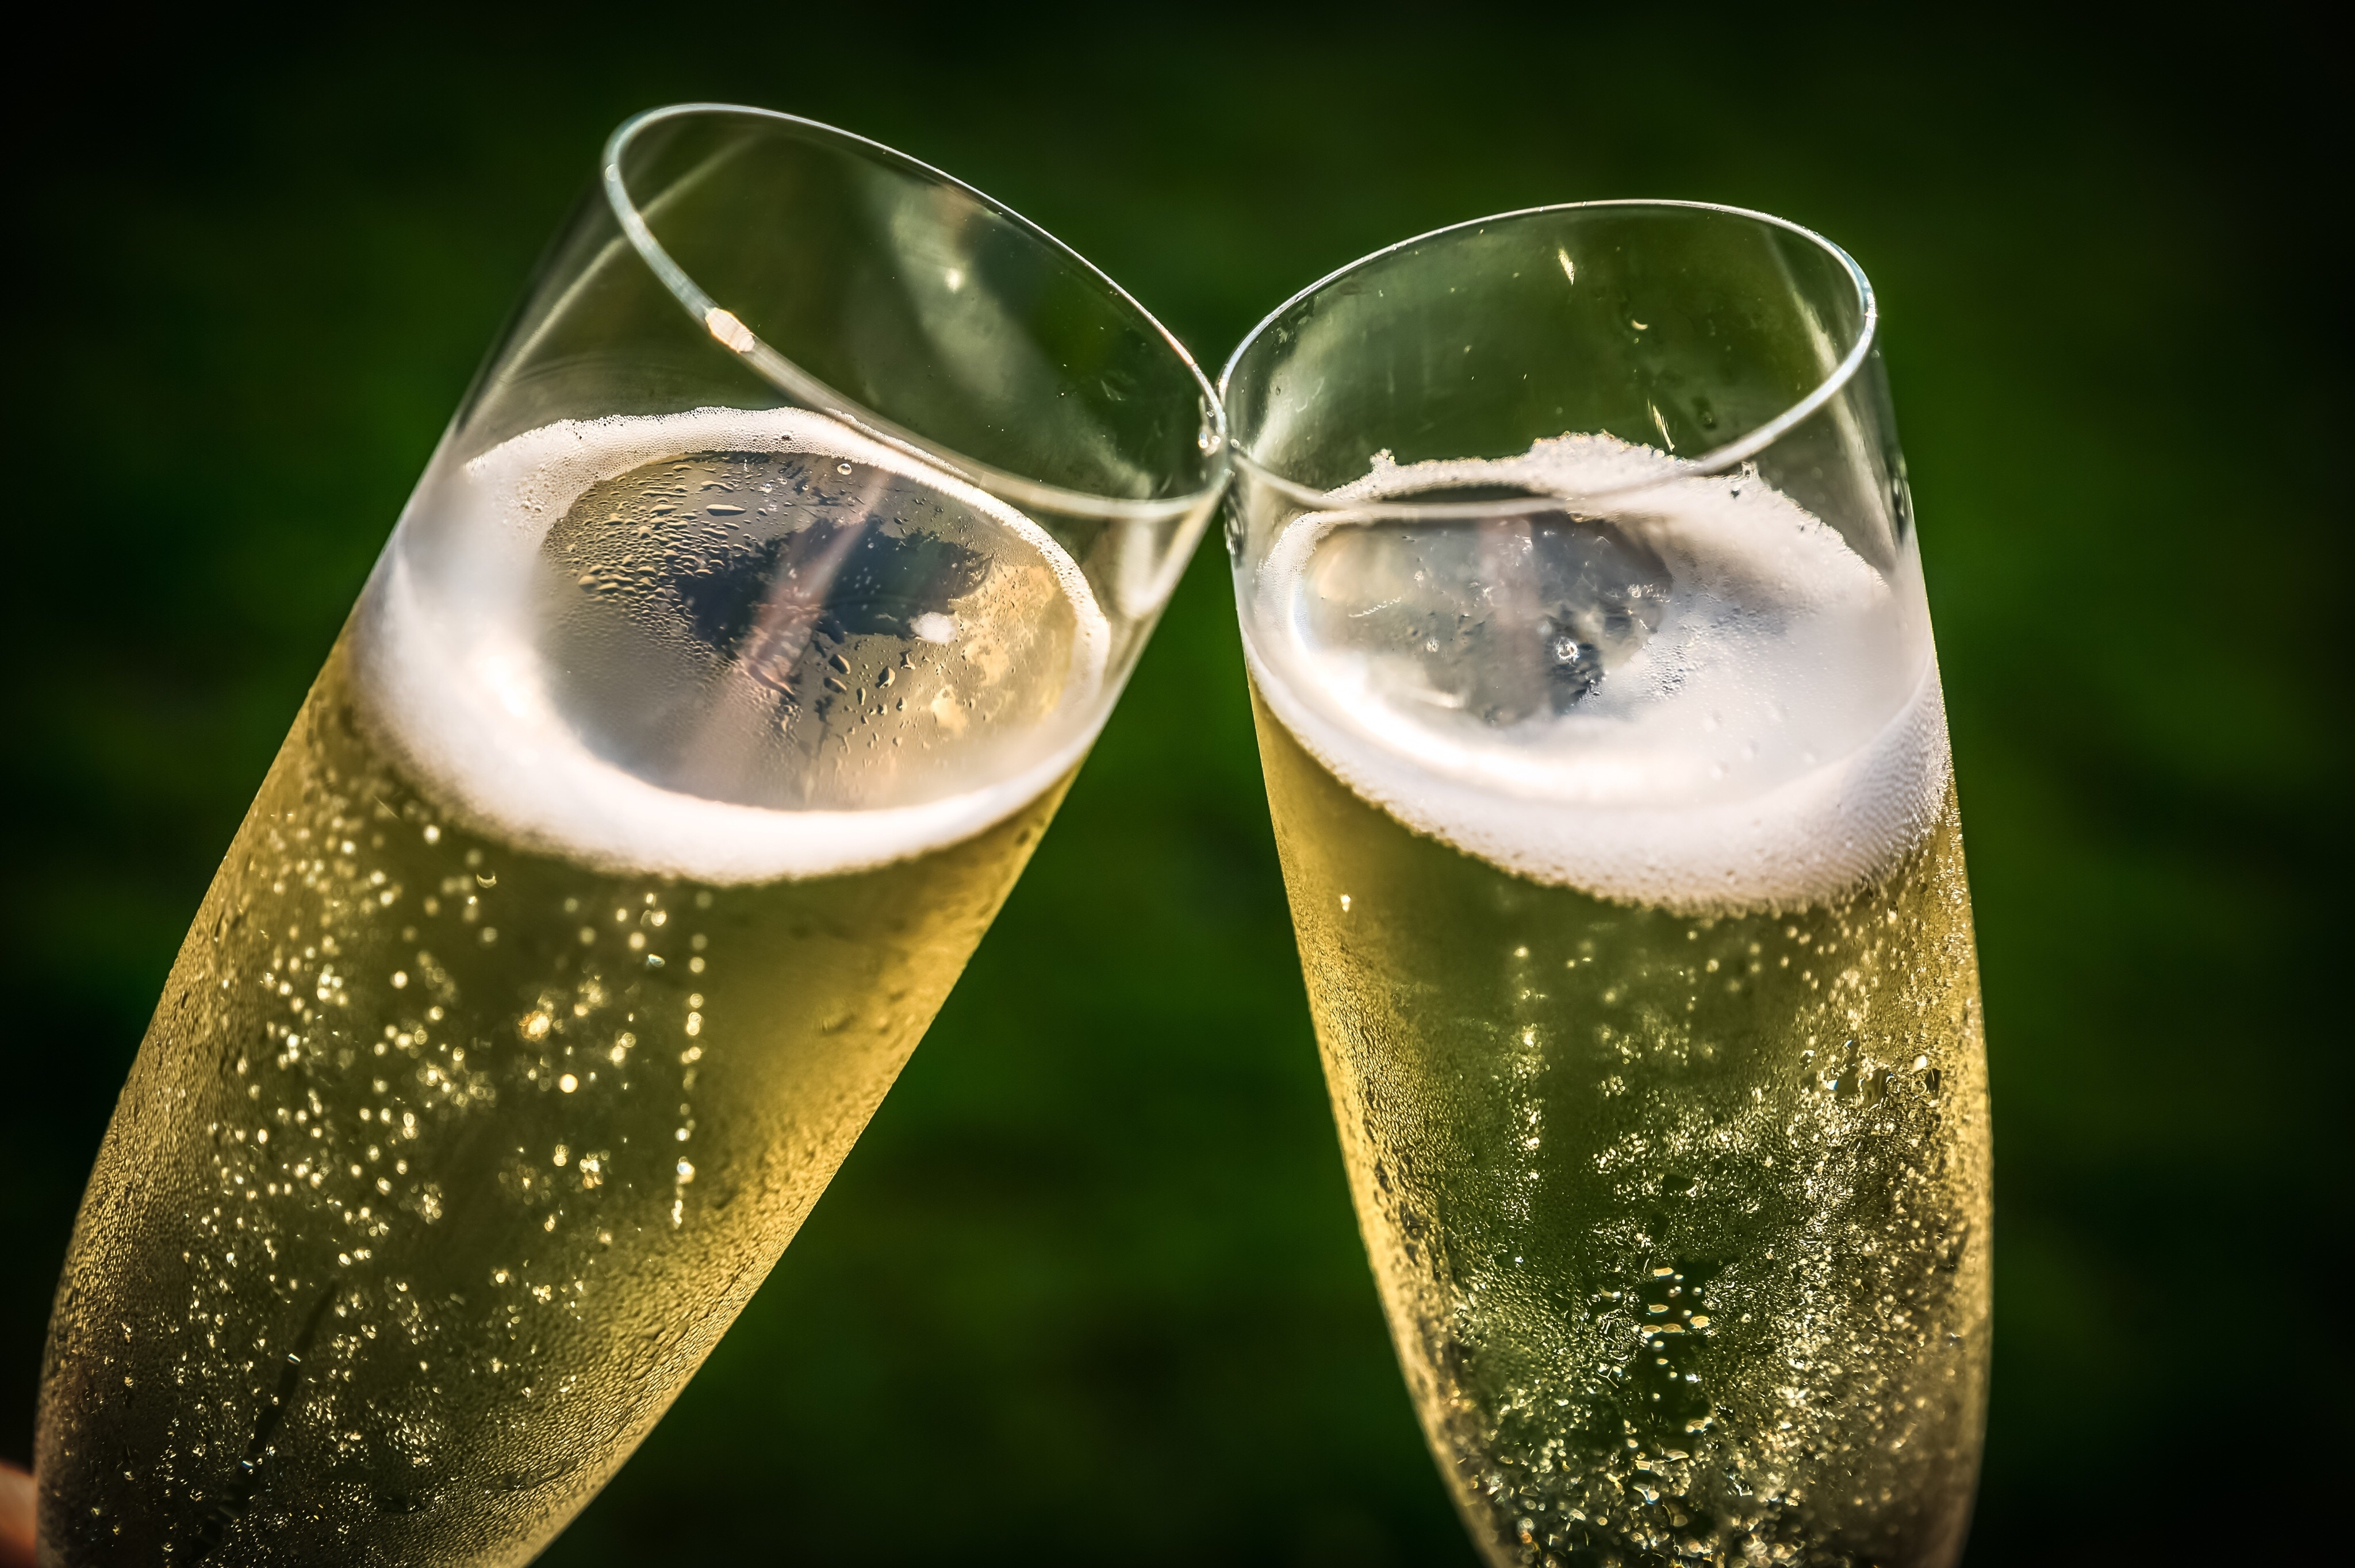 The smaller the bubble in that glass of champagne, the higher the pitch — and the price.